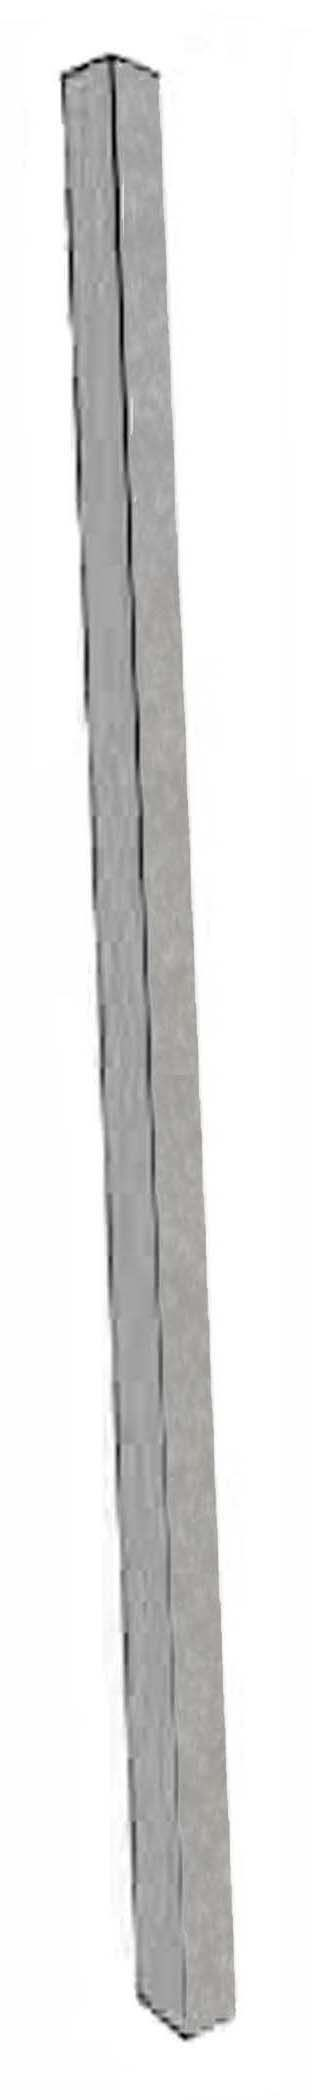 Light Grey Plastic Lumber Single Post